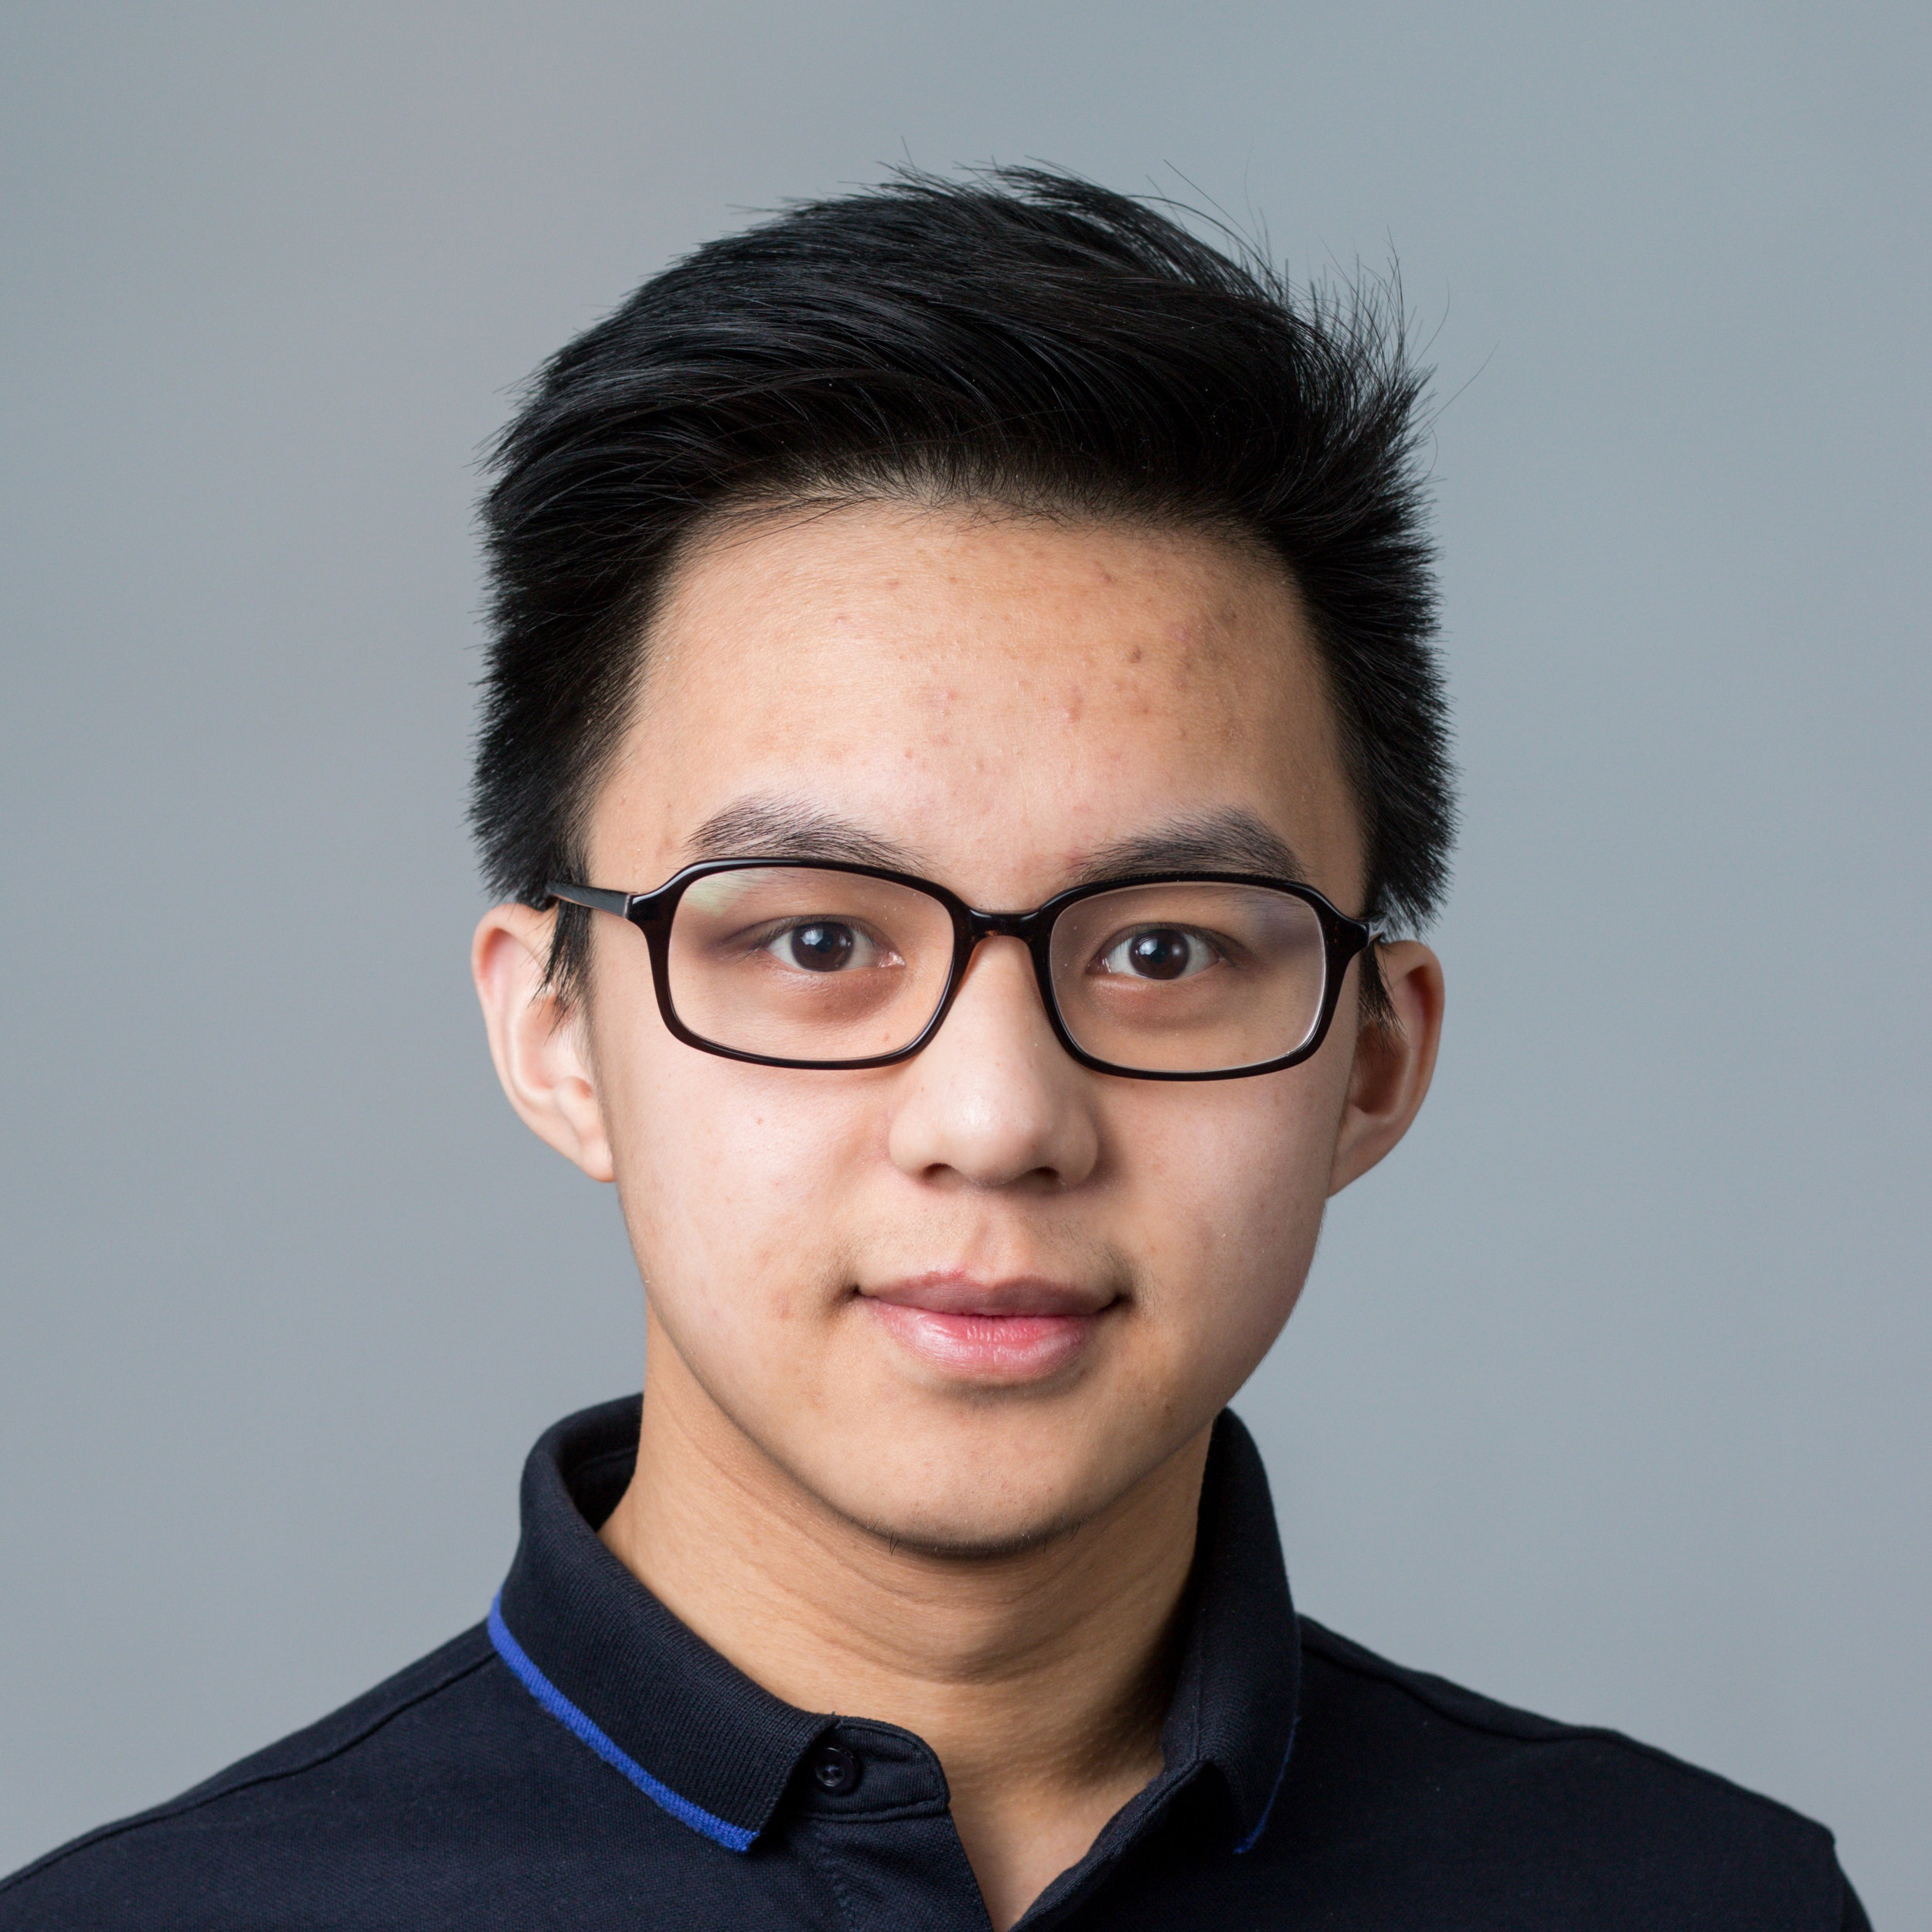 Chun Chiu - Head of Marketing